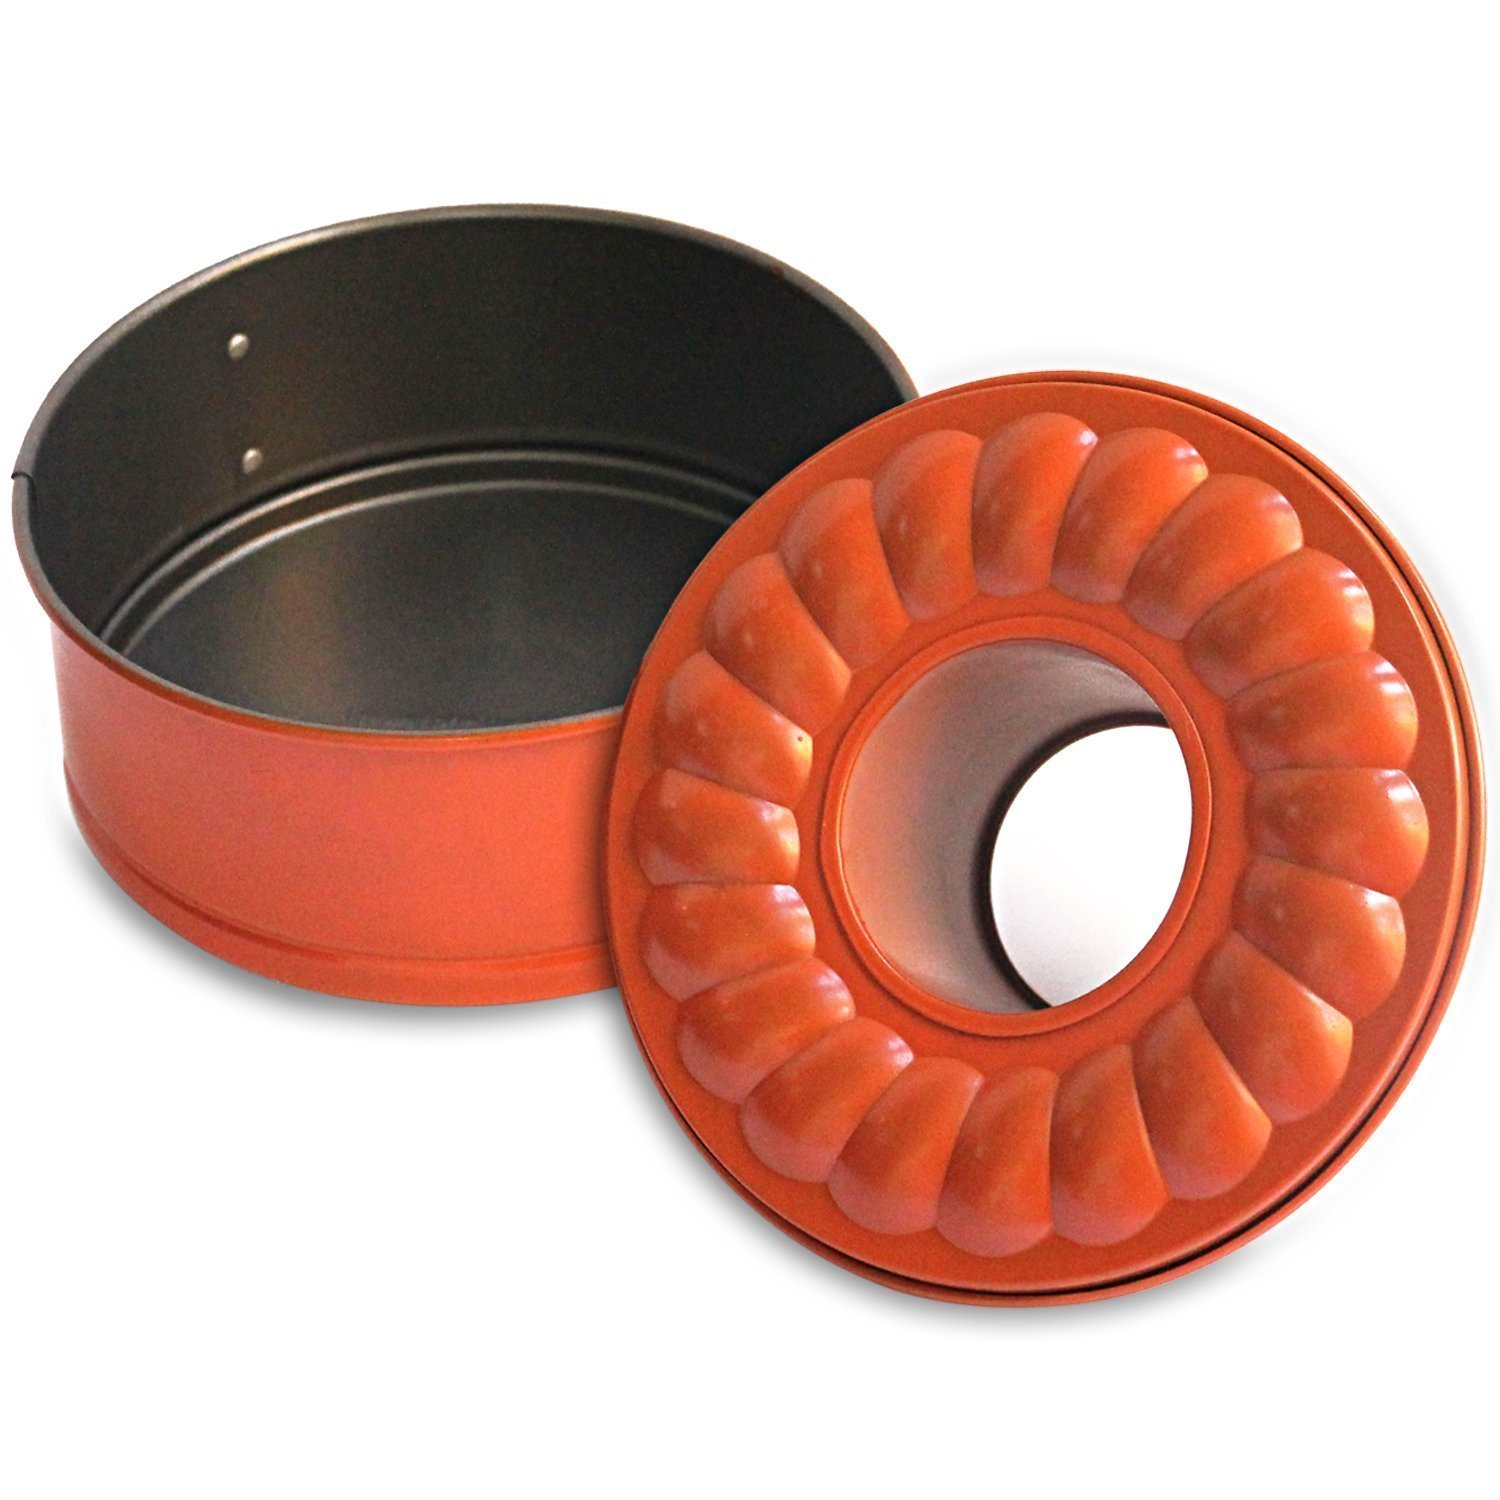 Pressure Cooking Three Piece Bundle Set For Use With Pressure Cookers And Oven, Includes 7'' Spring form Bundt Pan, Steamer Trivet, Silicone Mitt by Debbiedoo's (Image #2)